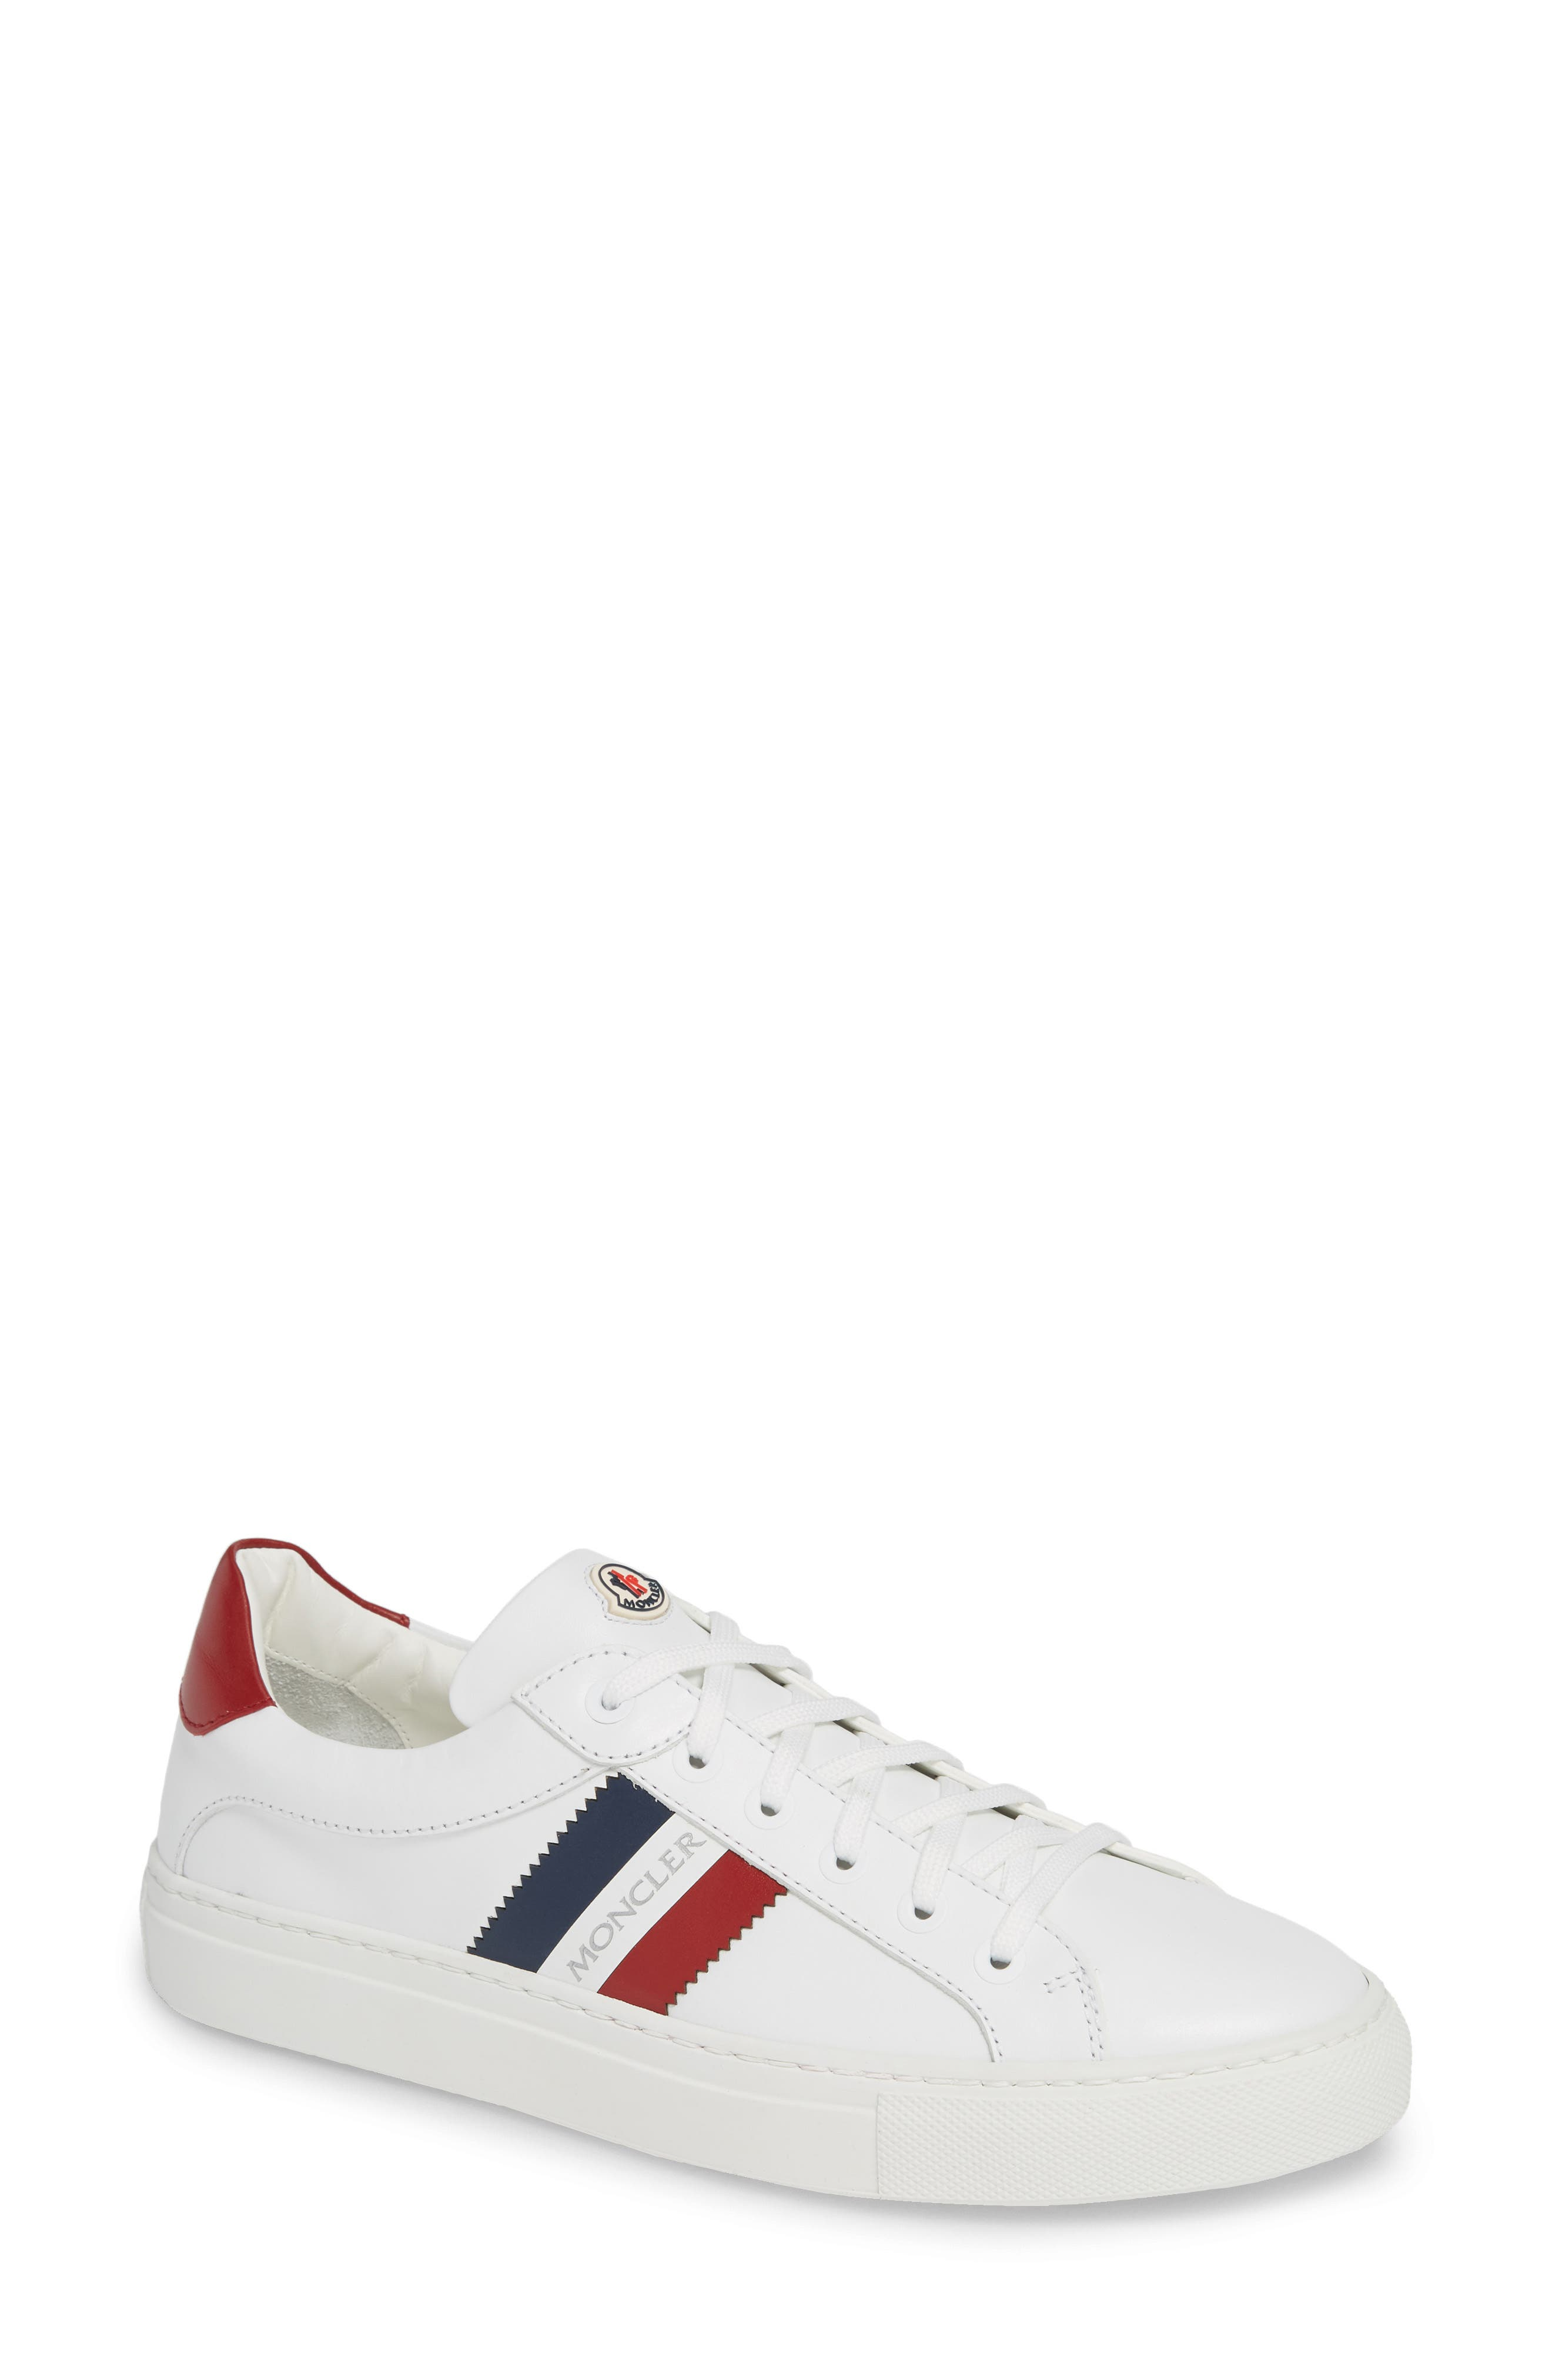 New Leni Scarpa Sneaker,                             Main thumbnail 1, color,                             WHITE